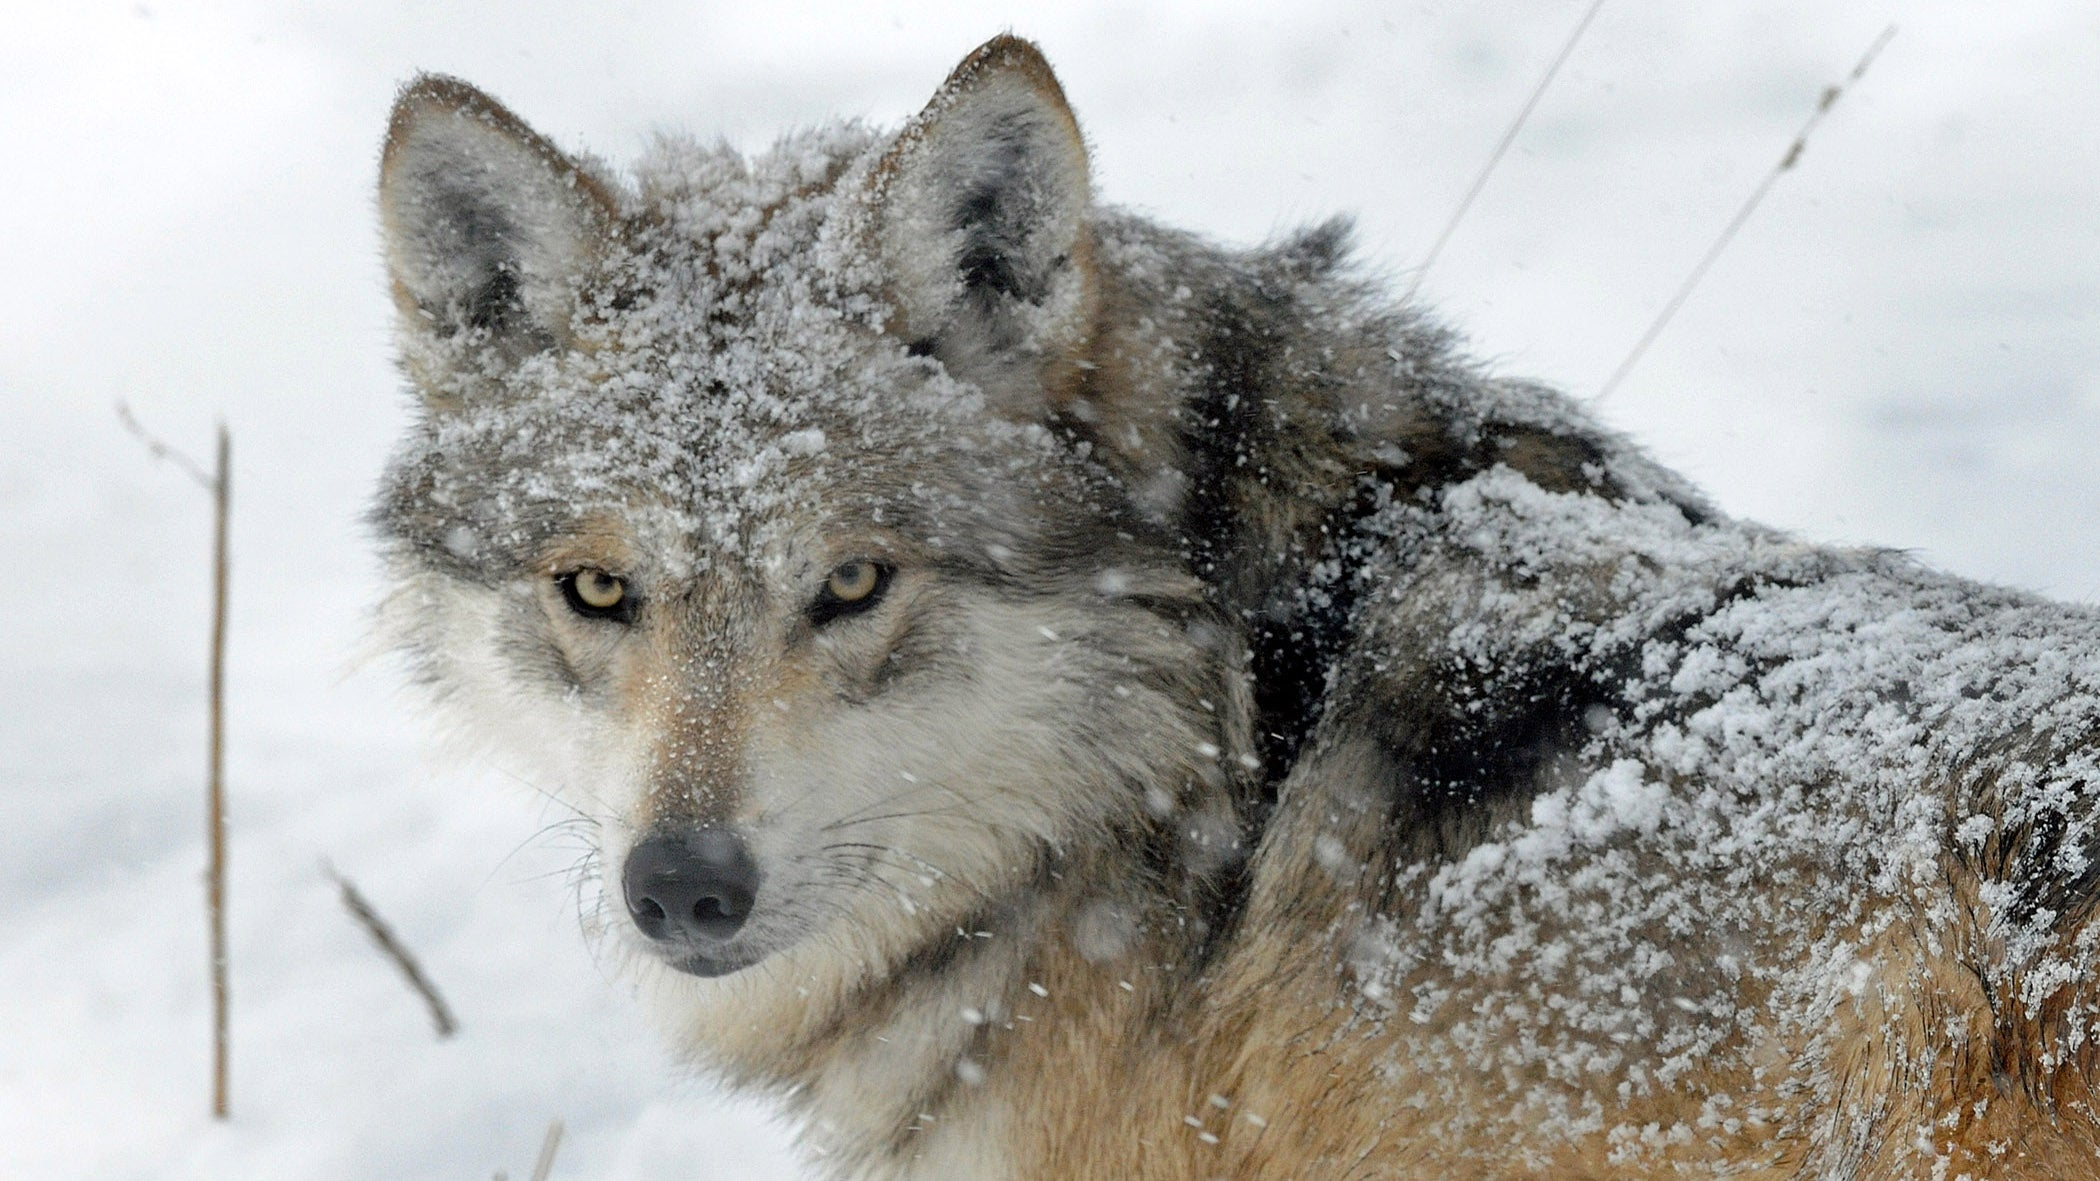 animals snow winter loving play weather animal wild creature channel playing nature kingdom happens wolf